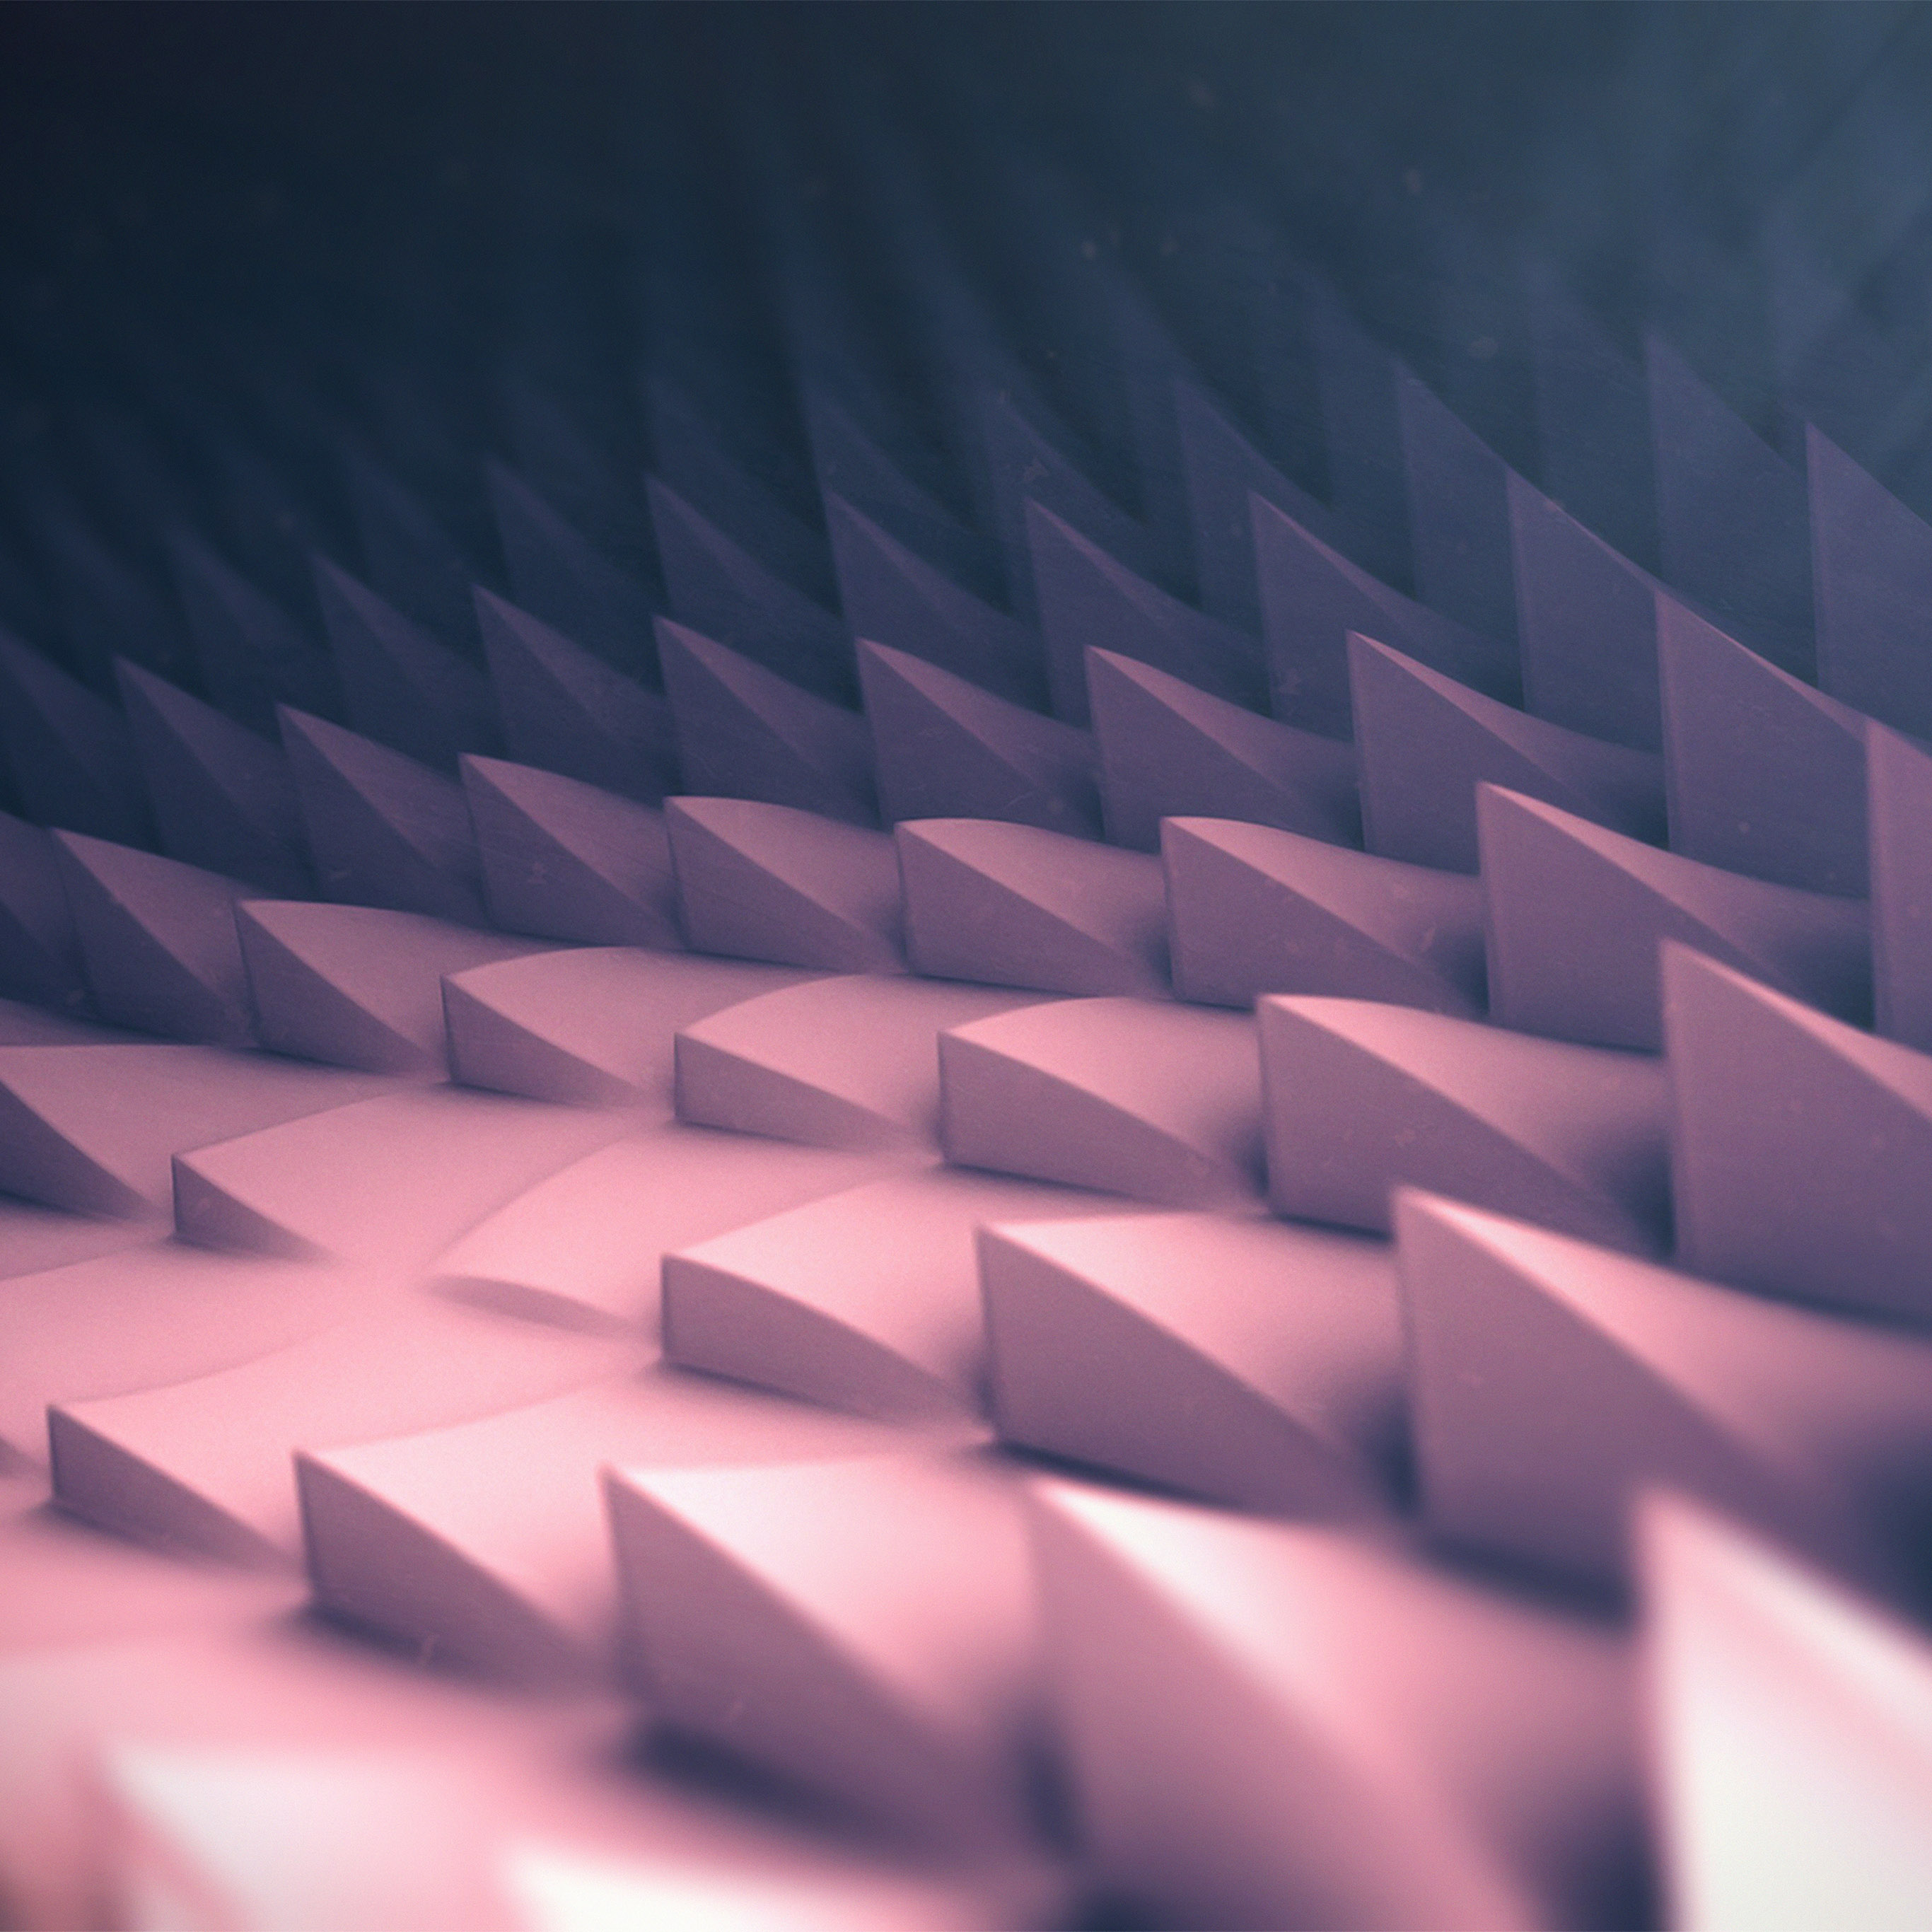 3d Pc Wallpaper 3d Graphic Wallpaper Geometric Wallpapers For Iphone And Ipad